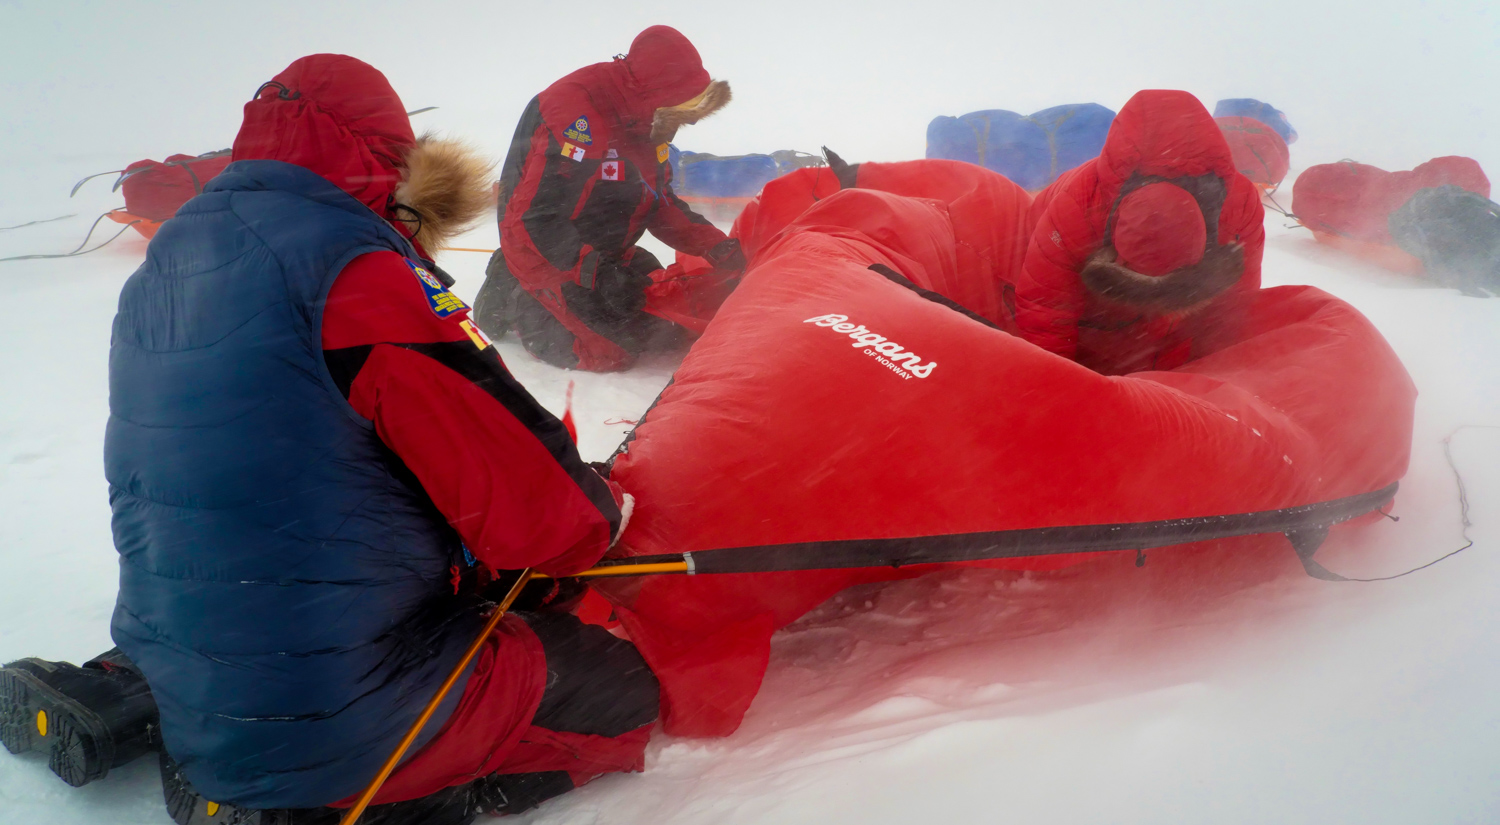 John and teammates put up their tent in a storm off the coast of Axel Heiberg Island, Canada. © Kyle O'Donoghue